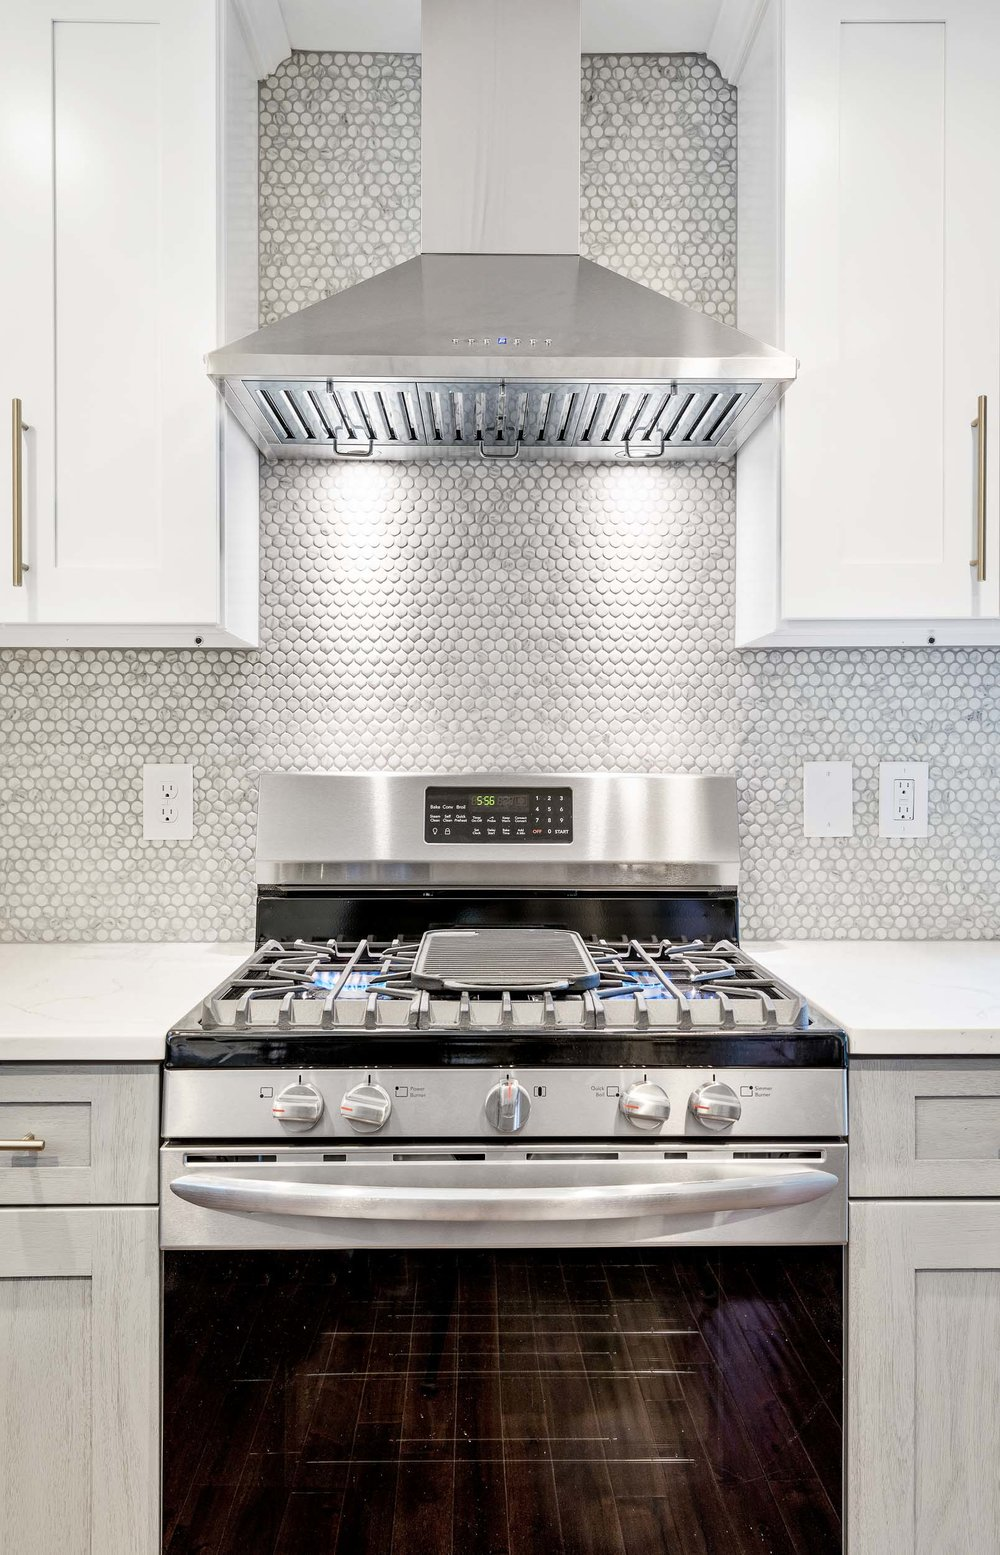 Construction photography of a frigidaire stove in a newly finish